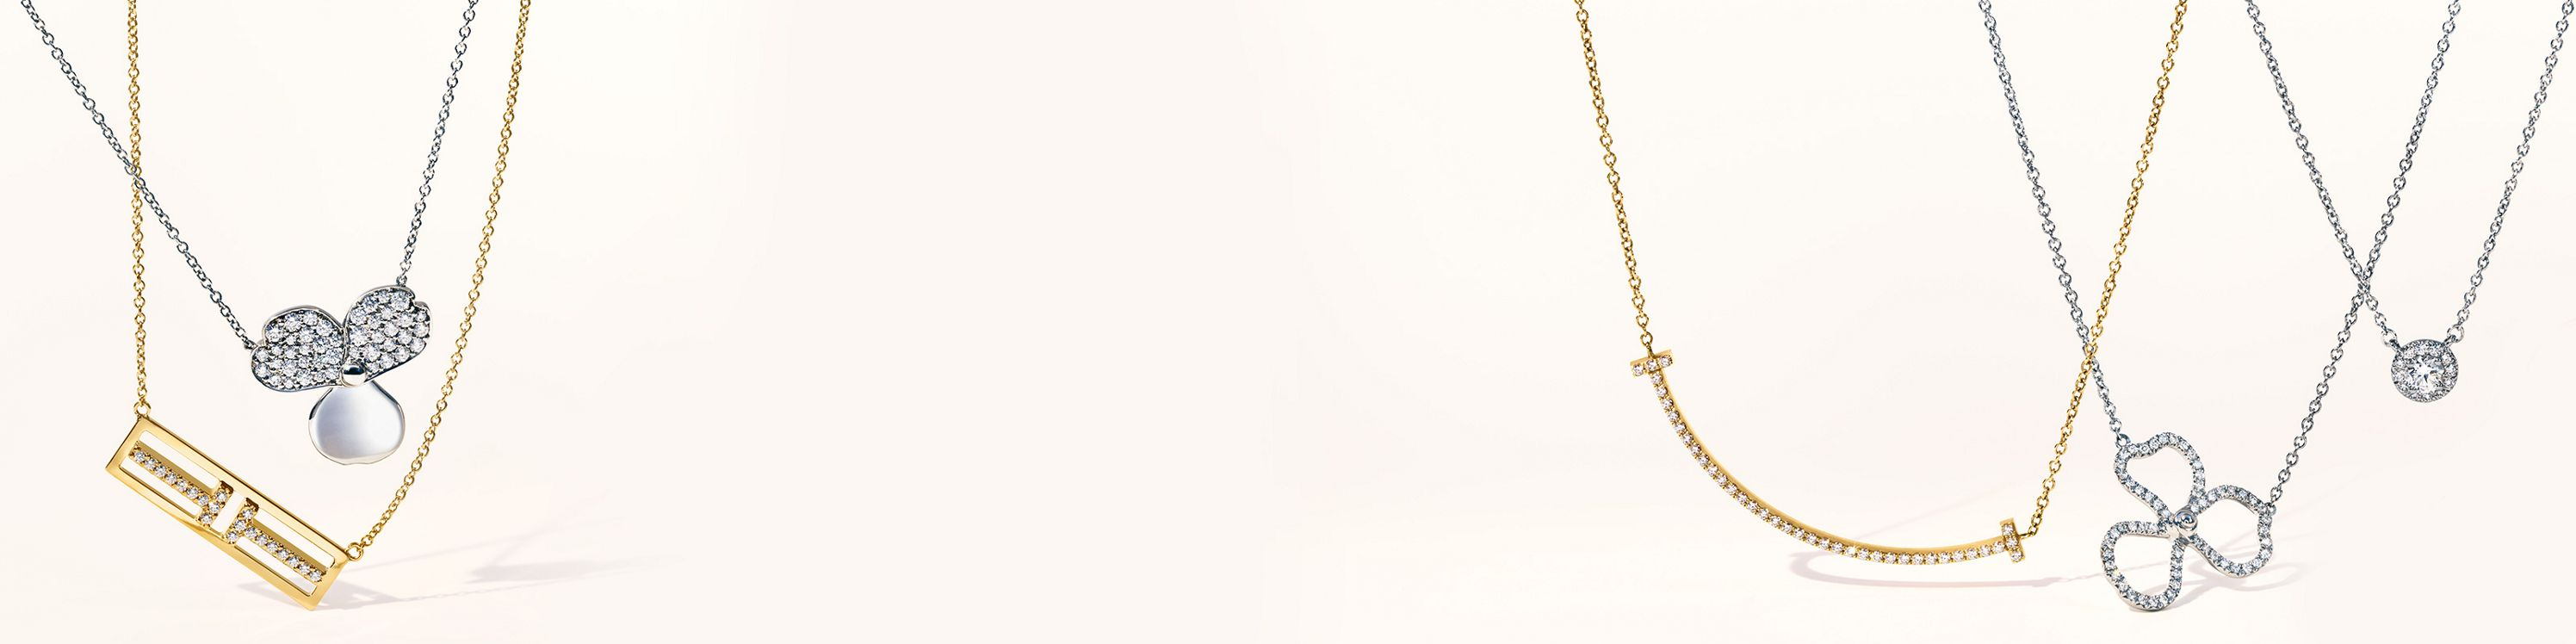 17f7b1569 Necklaces & Pendants | Tiffany & Co.